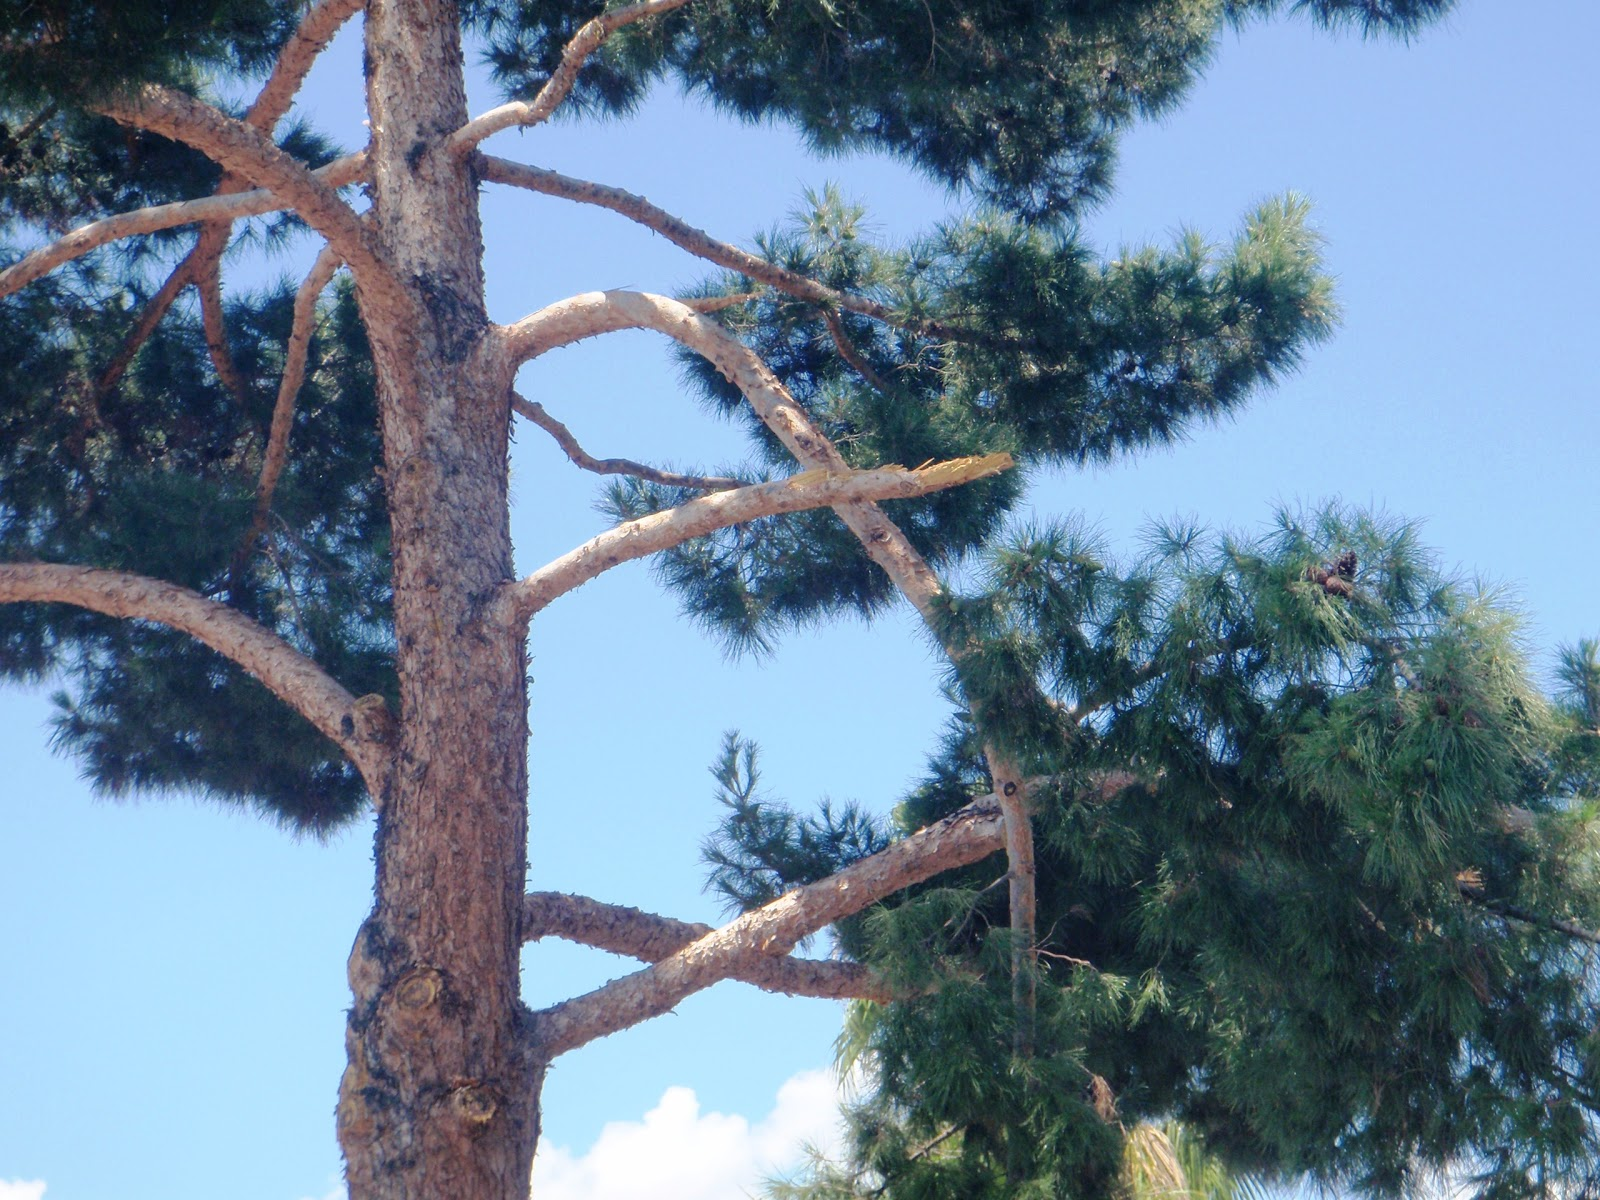 Pine Tree Thinning To Reduce Over From High Winds And The Subsequent Loss Of Branch Taper Or Caliper This Practice Can Lead Breakage Which It